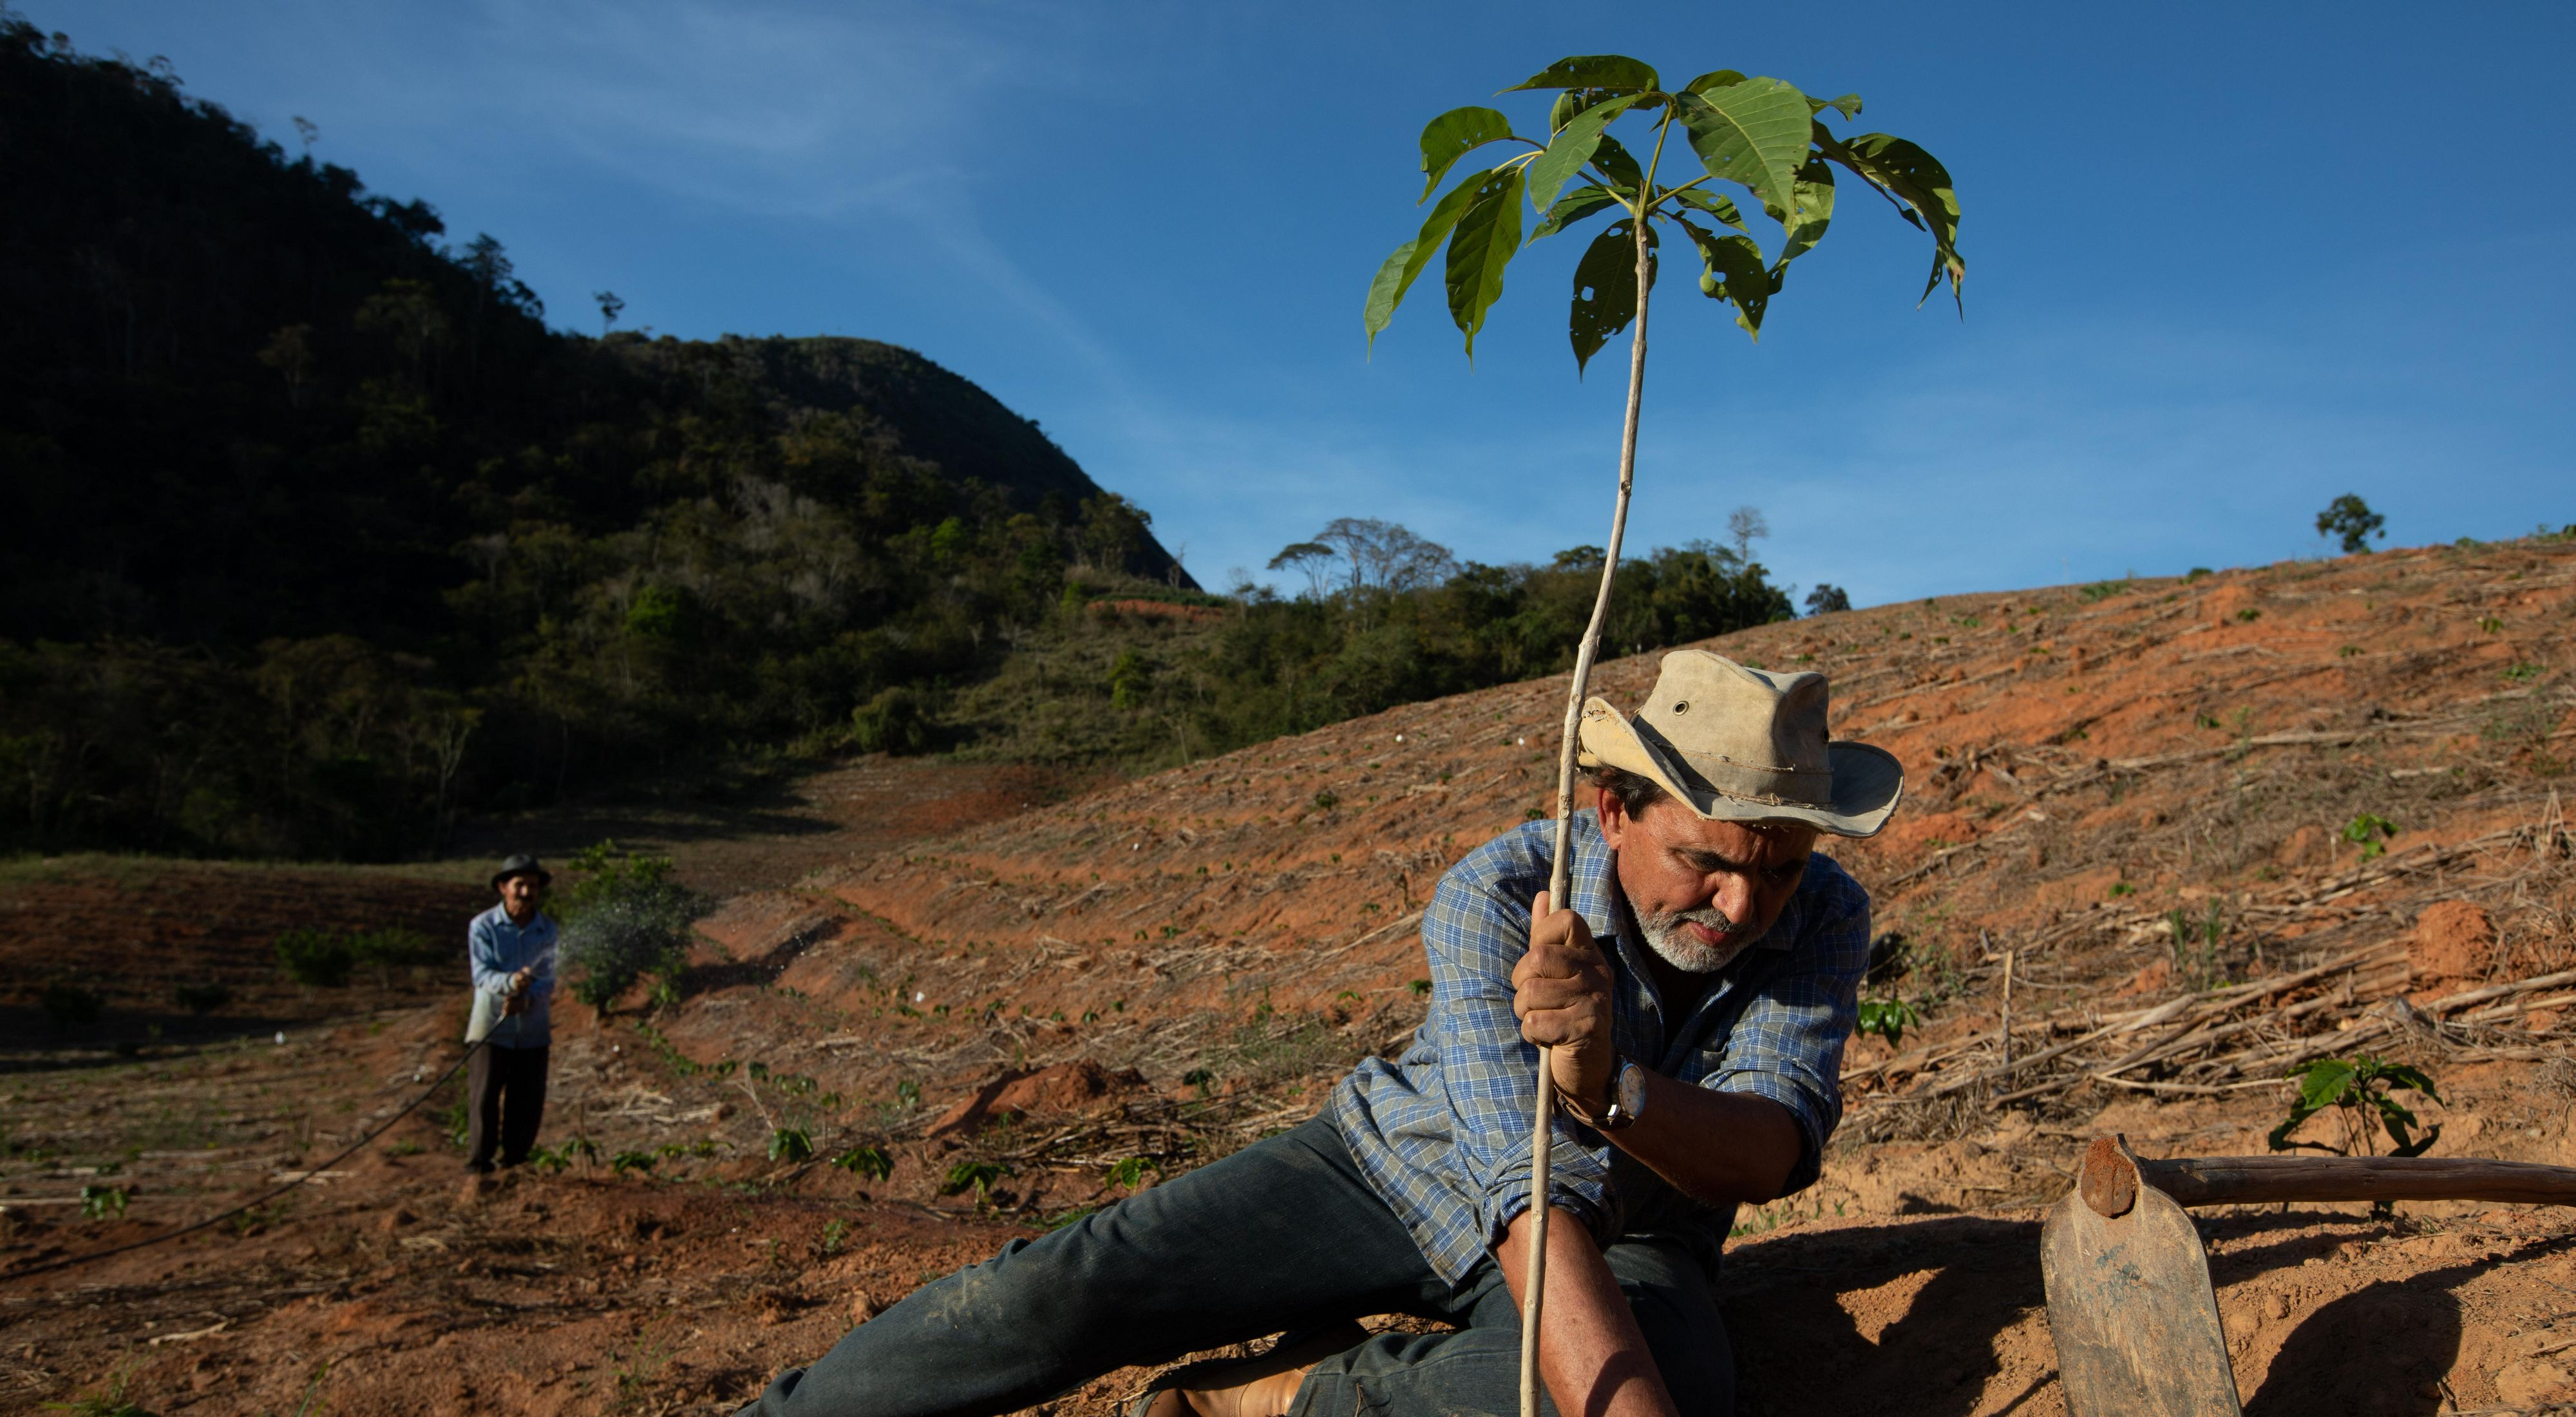 Adolfo Littiga planting a native tree on the farm he also grew up on. Adolfo develops agroforestry systems as part of the Reflorestar program.